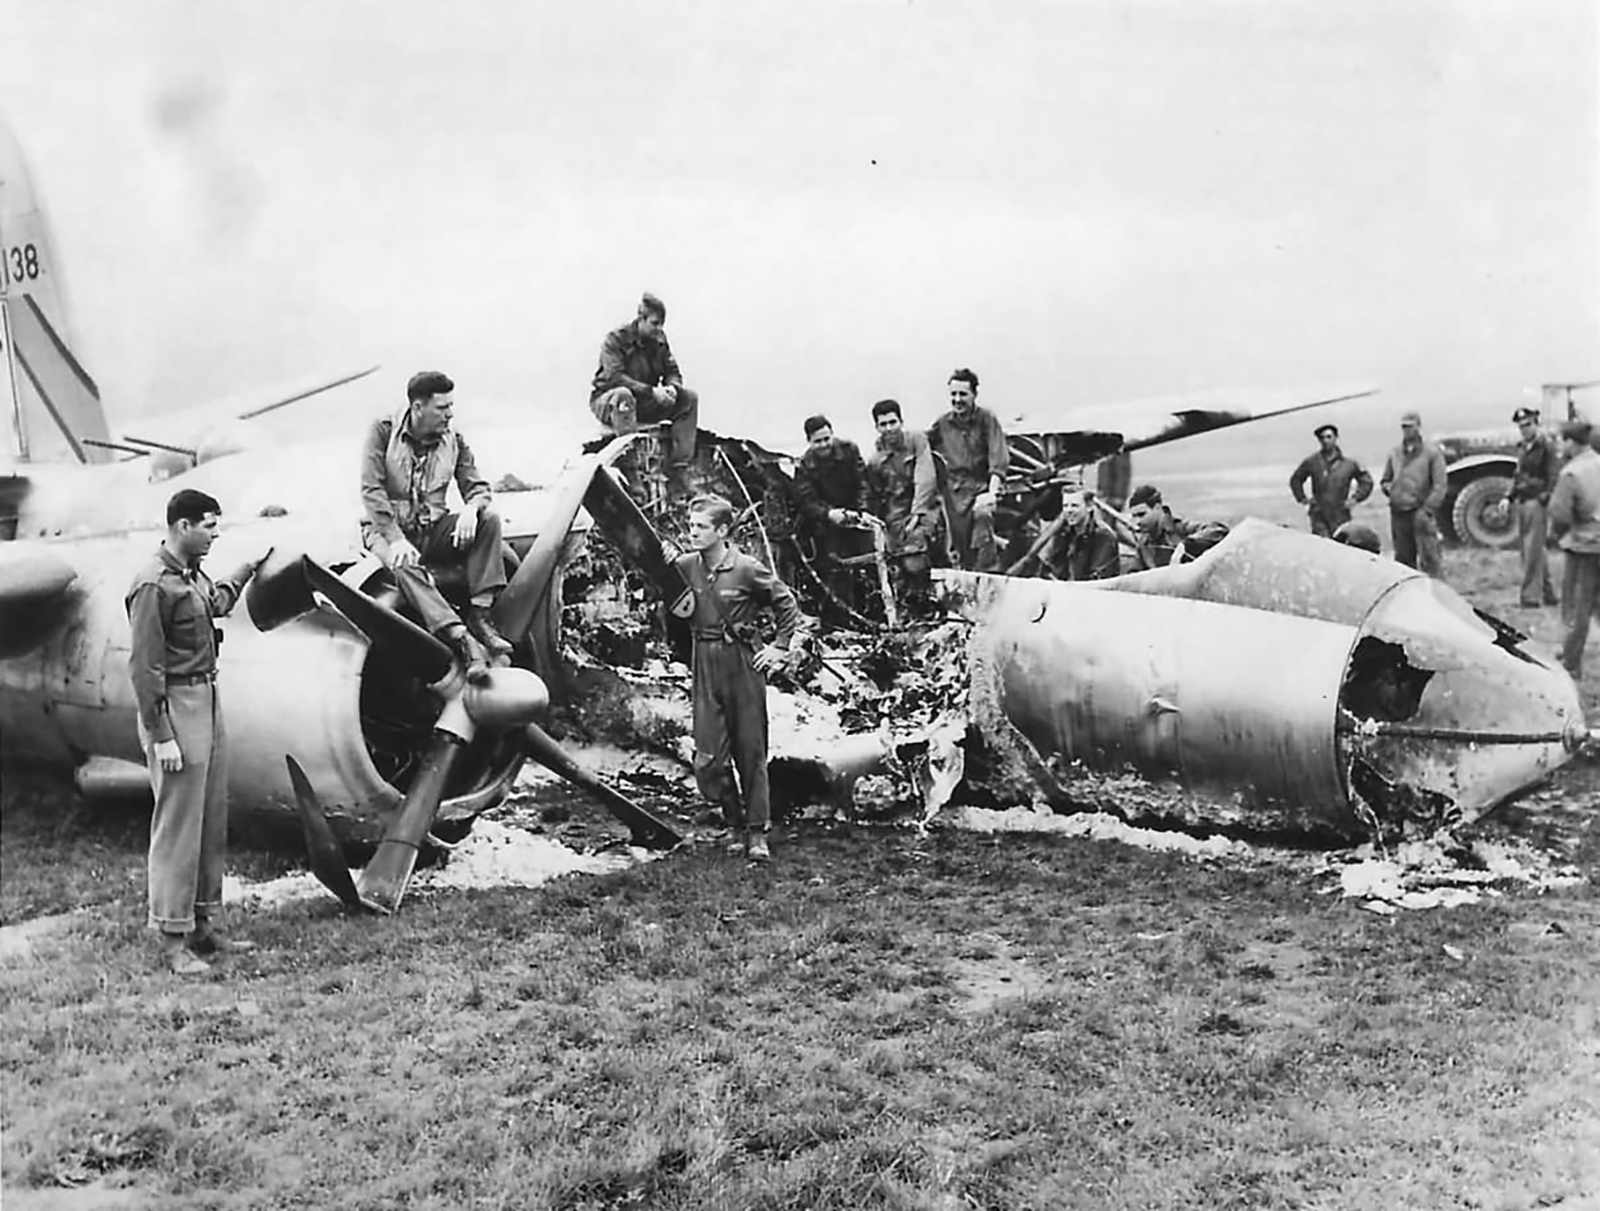 USAAF 42 96138 B 26B Marauder 397BG598BS U2C By Golly belly hit by fighters landed and burned France 9 Jul 1944 01